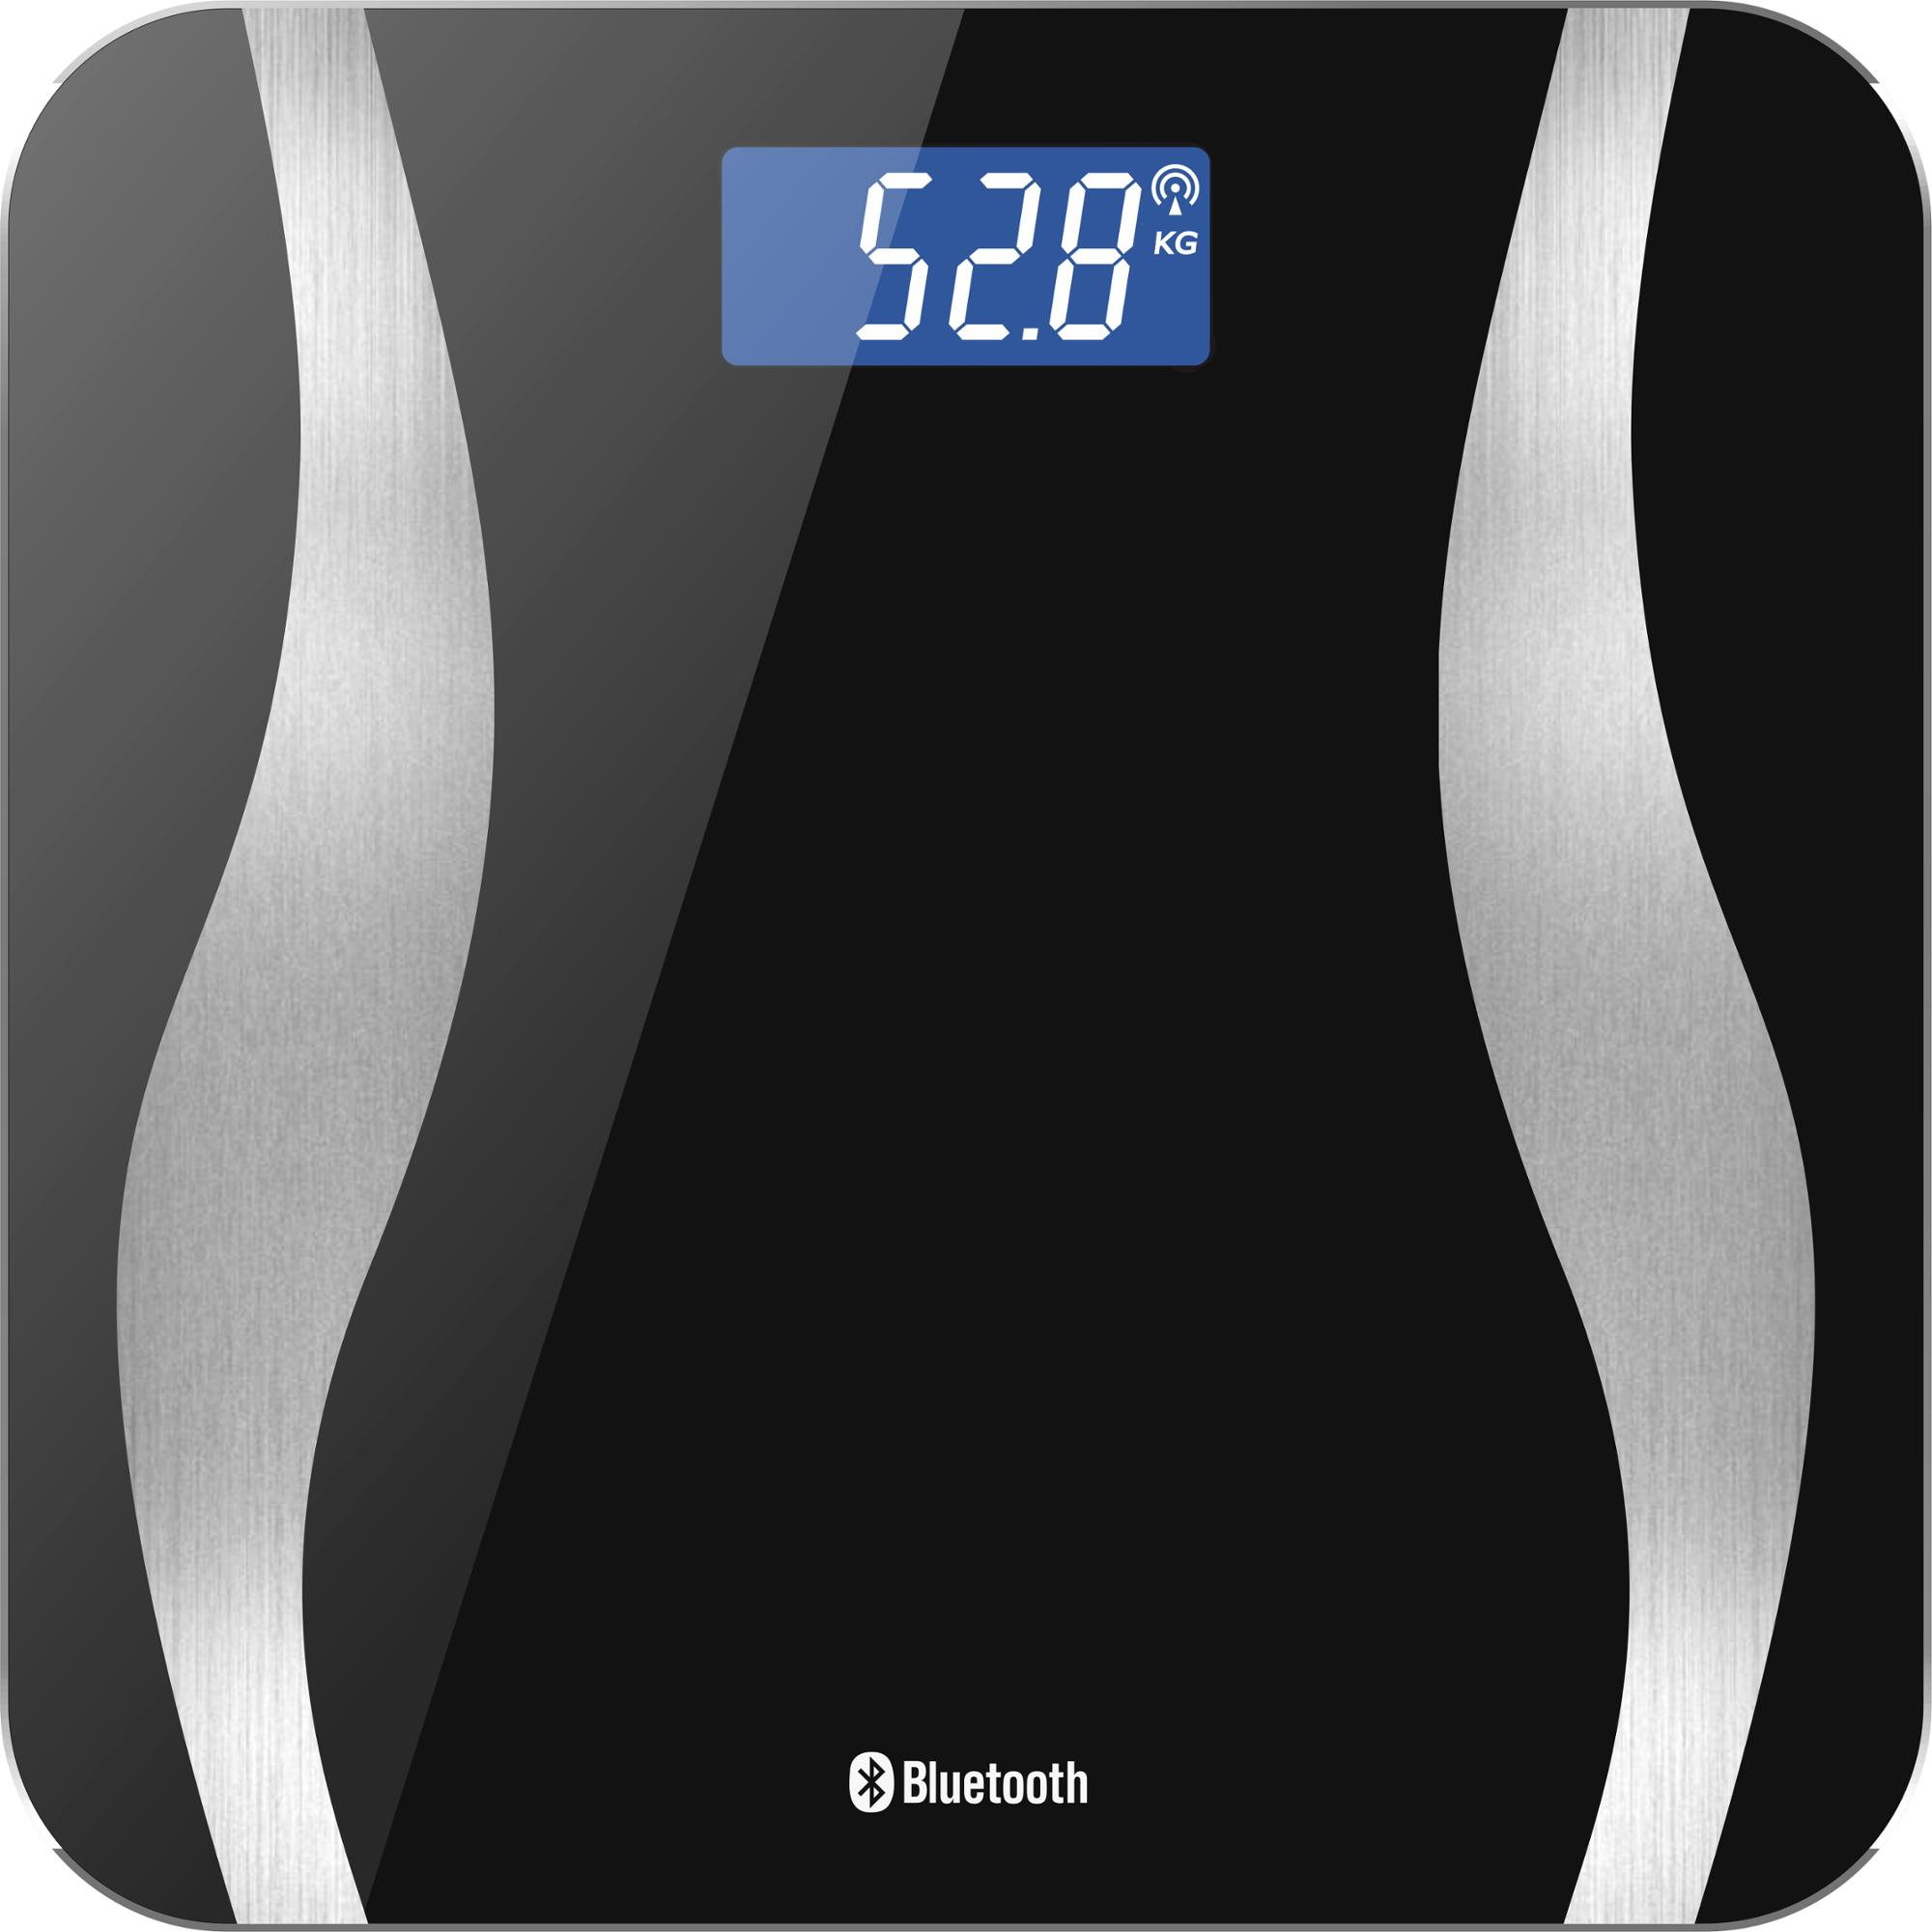 TS-BF8015LCD Yongkang 180KG/100G Wireless Bluetooth Smart Weighing Scale